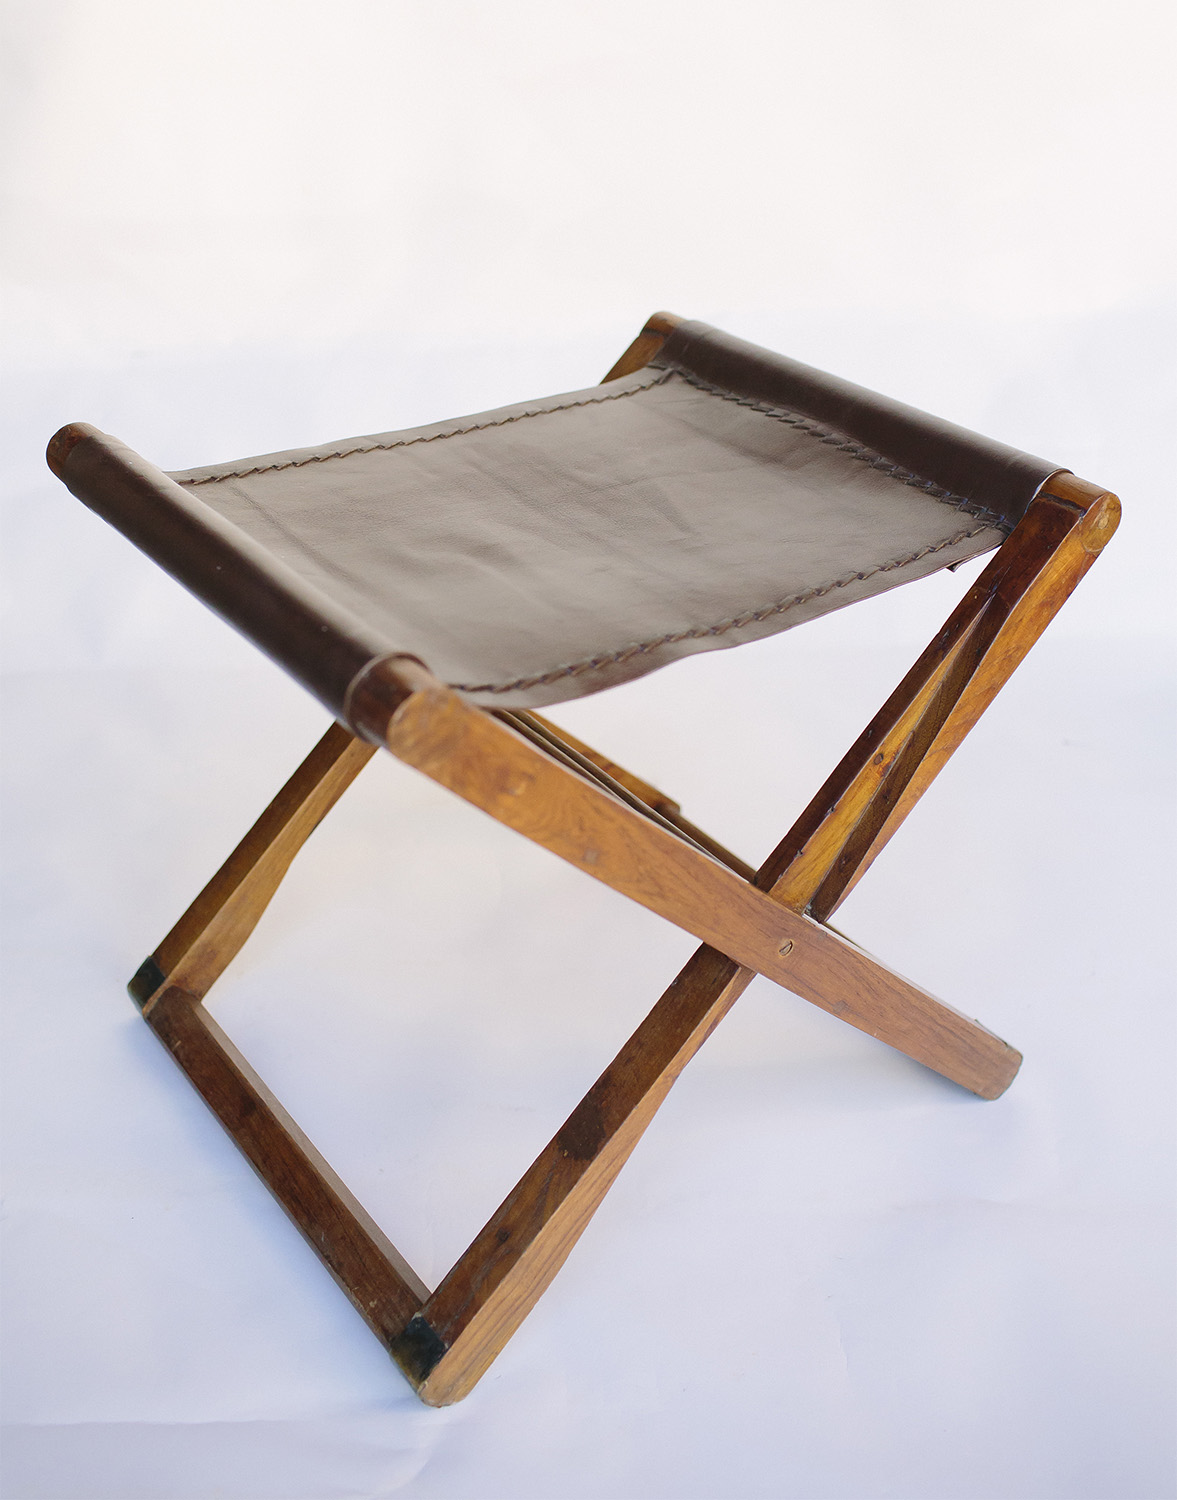 Leather Folding Stool / $15